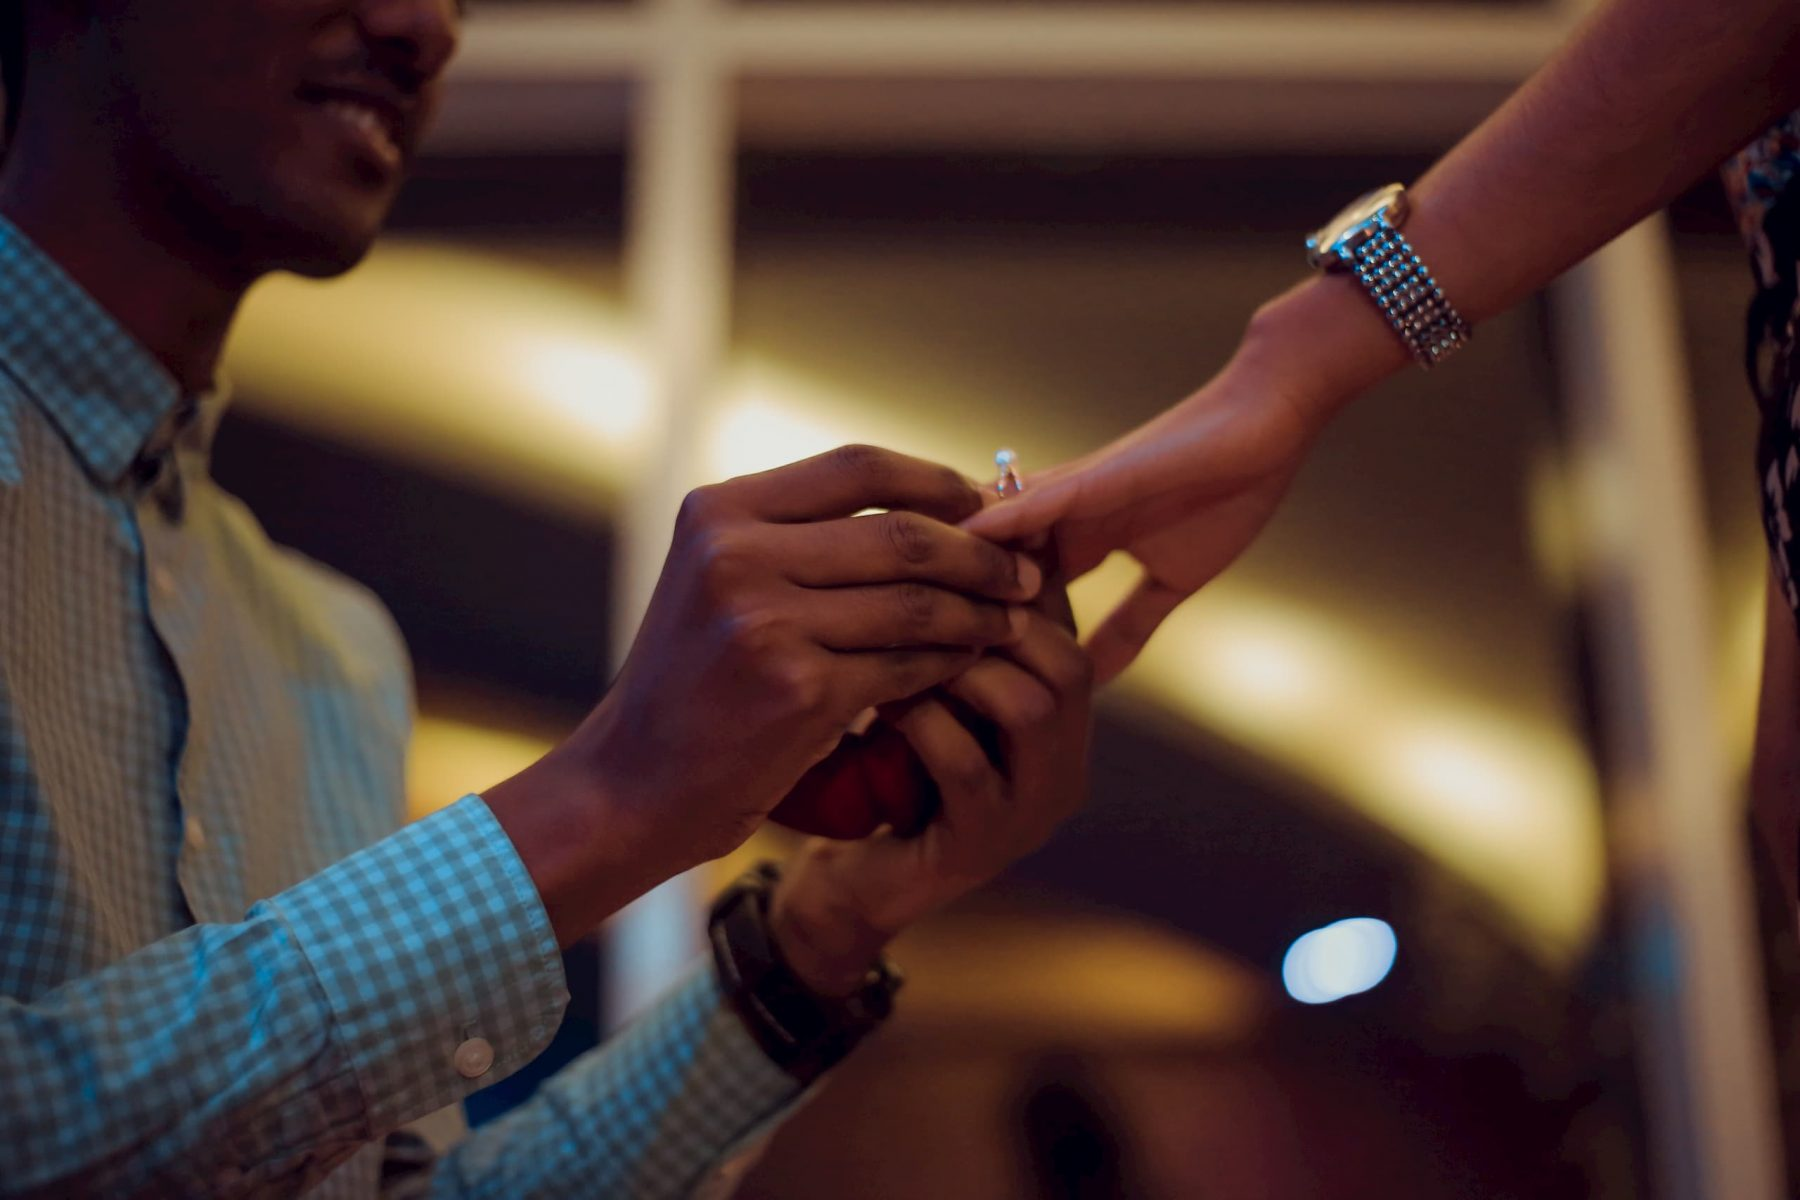 Man giving woman engagement ring